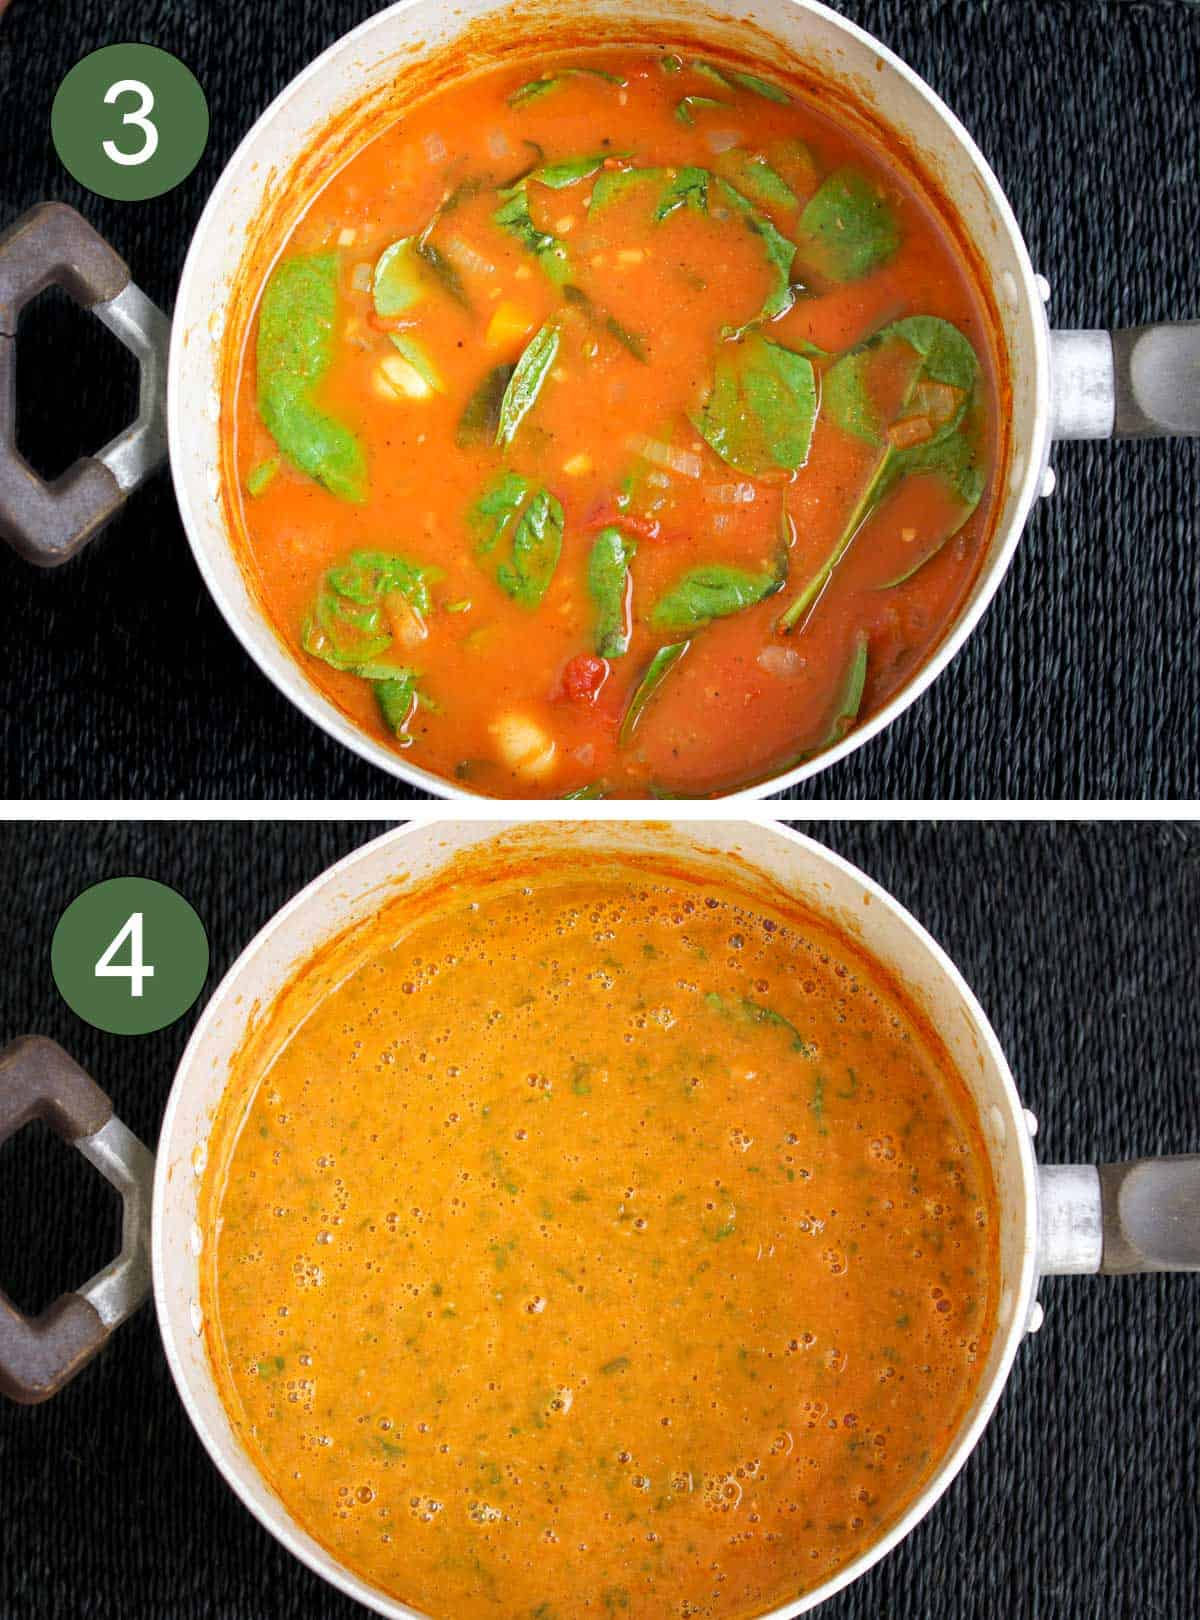 Butter Bean Soup Before and After Blending